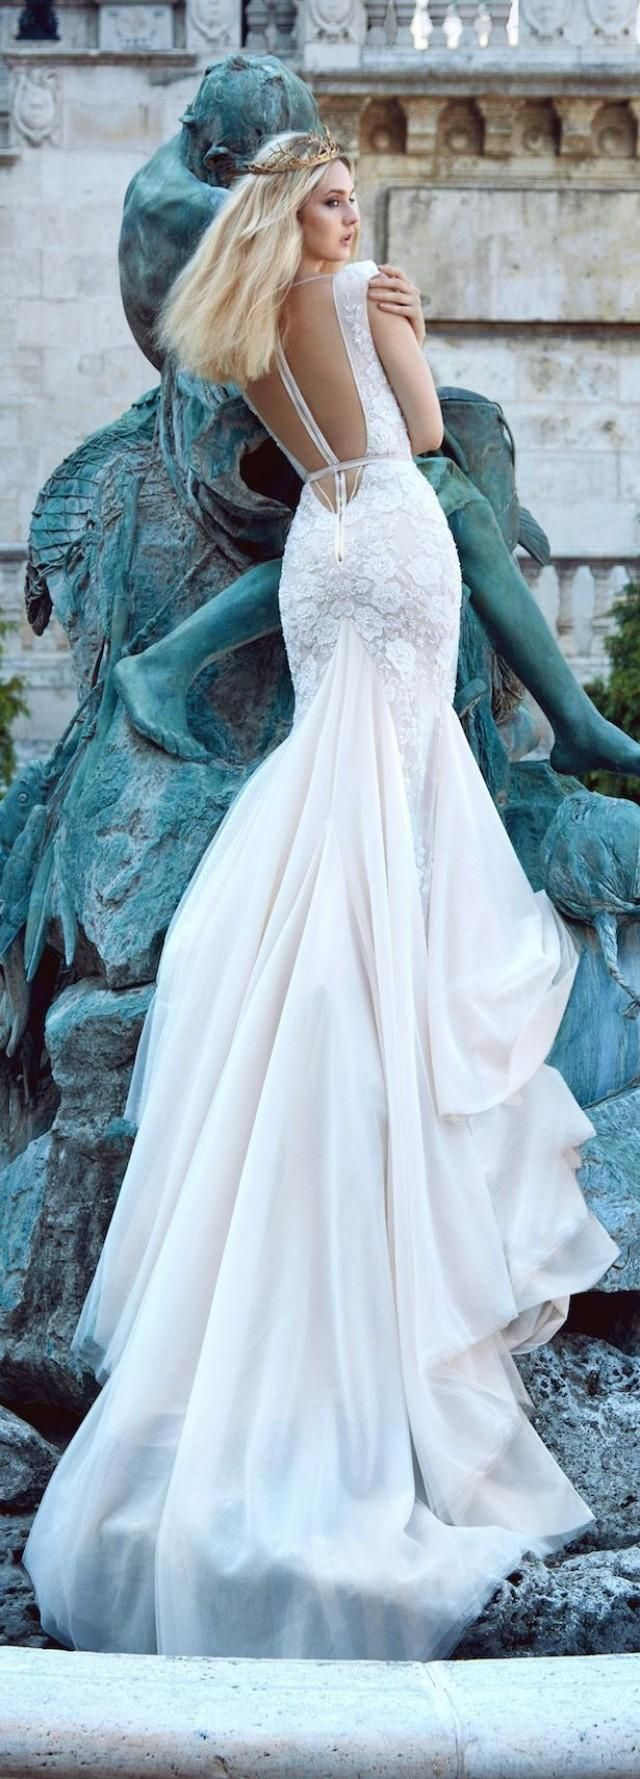 407 best dresses images on Pinterest | Evening gowns, Formal prom ...